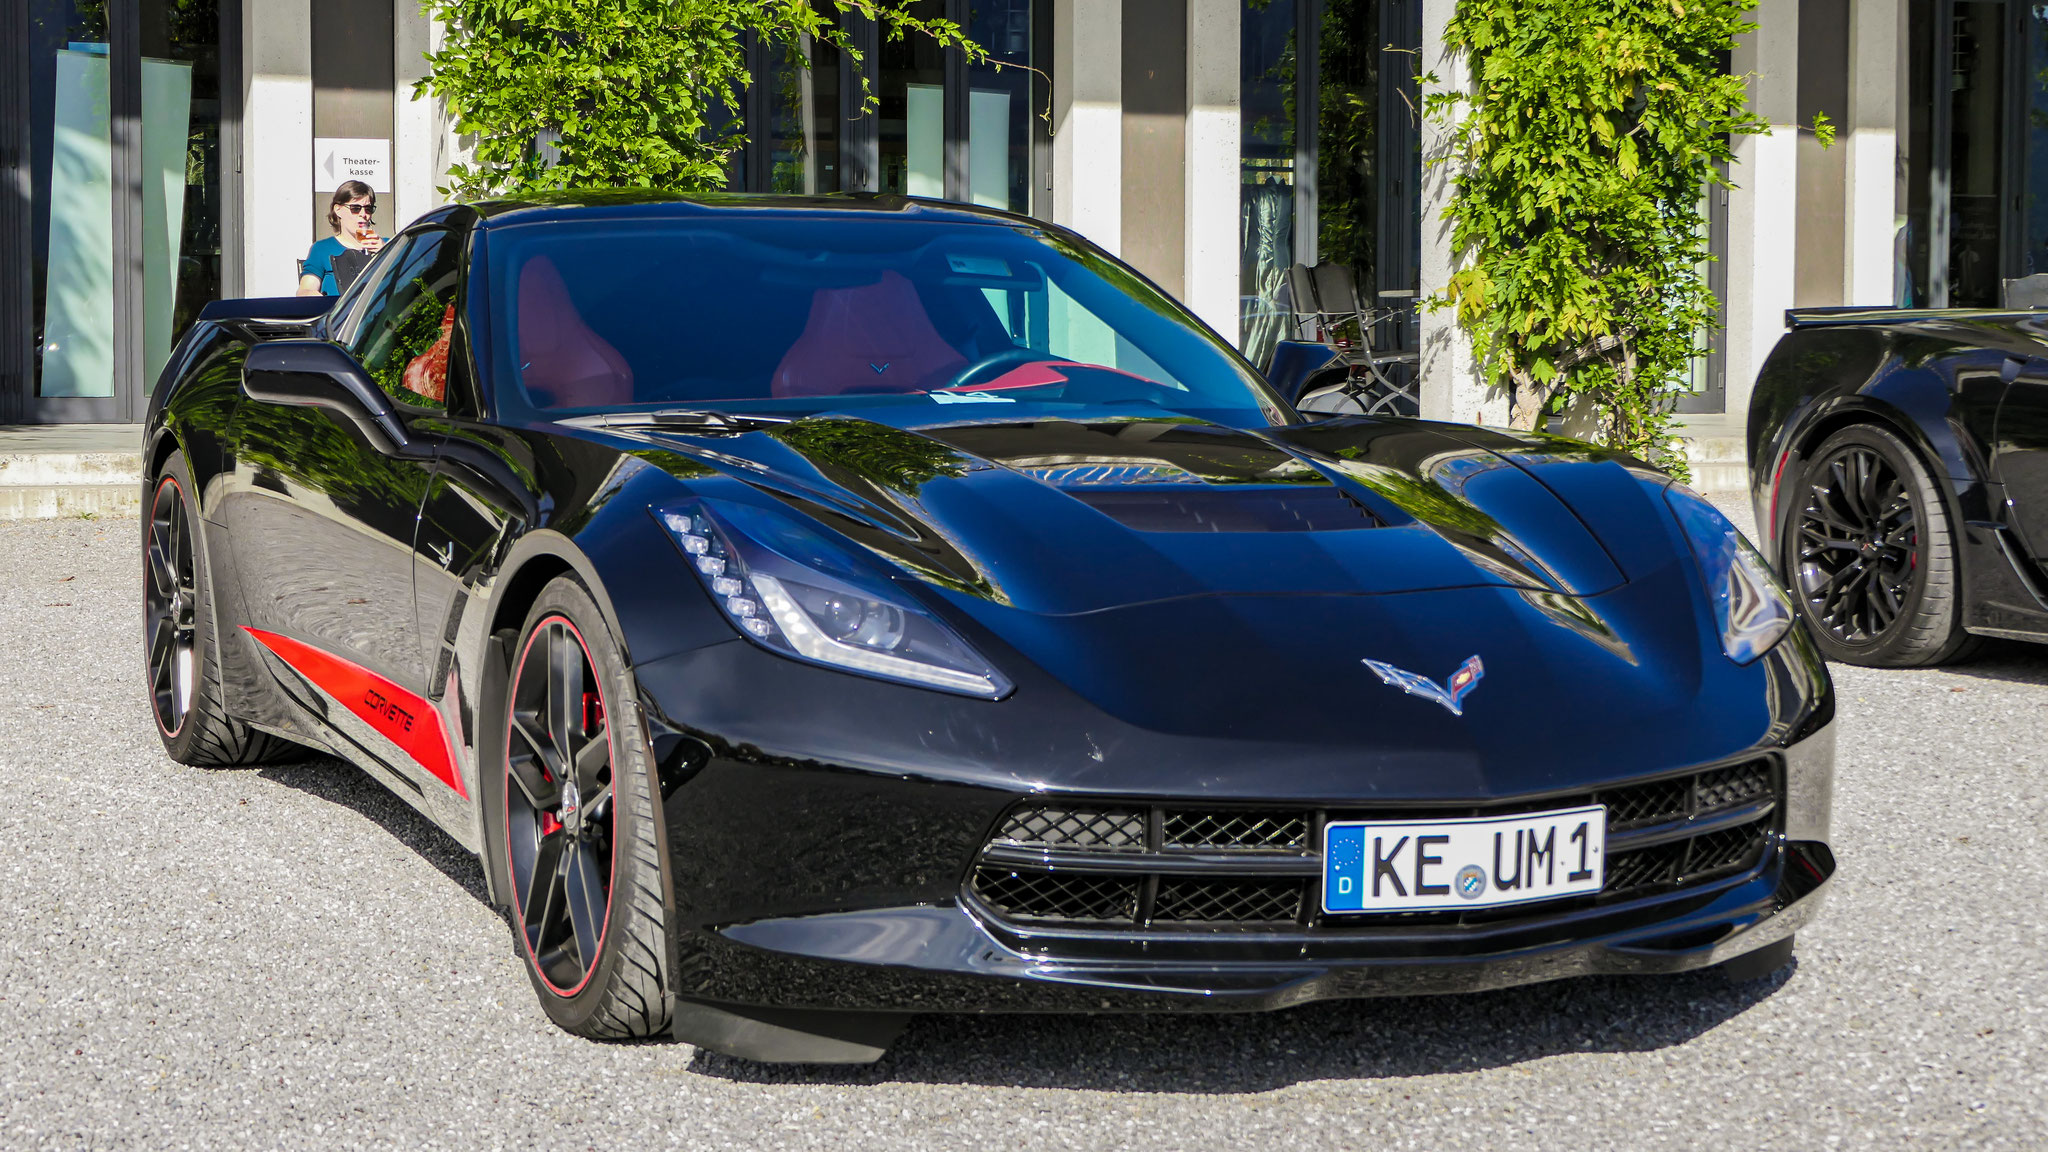 Chevrolet Corvette C7 Stingray - KE-UM-1